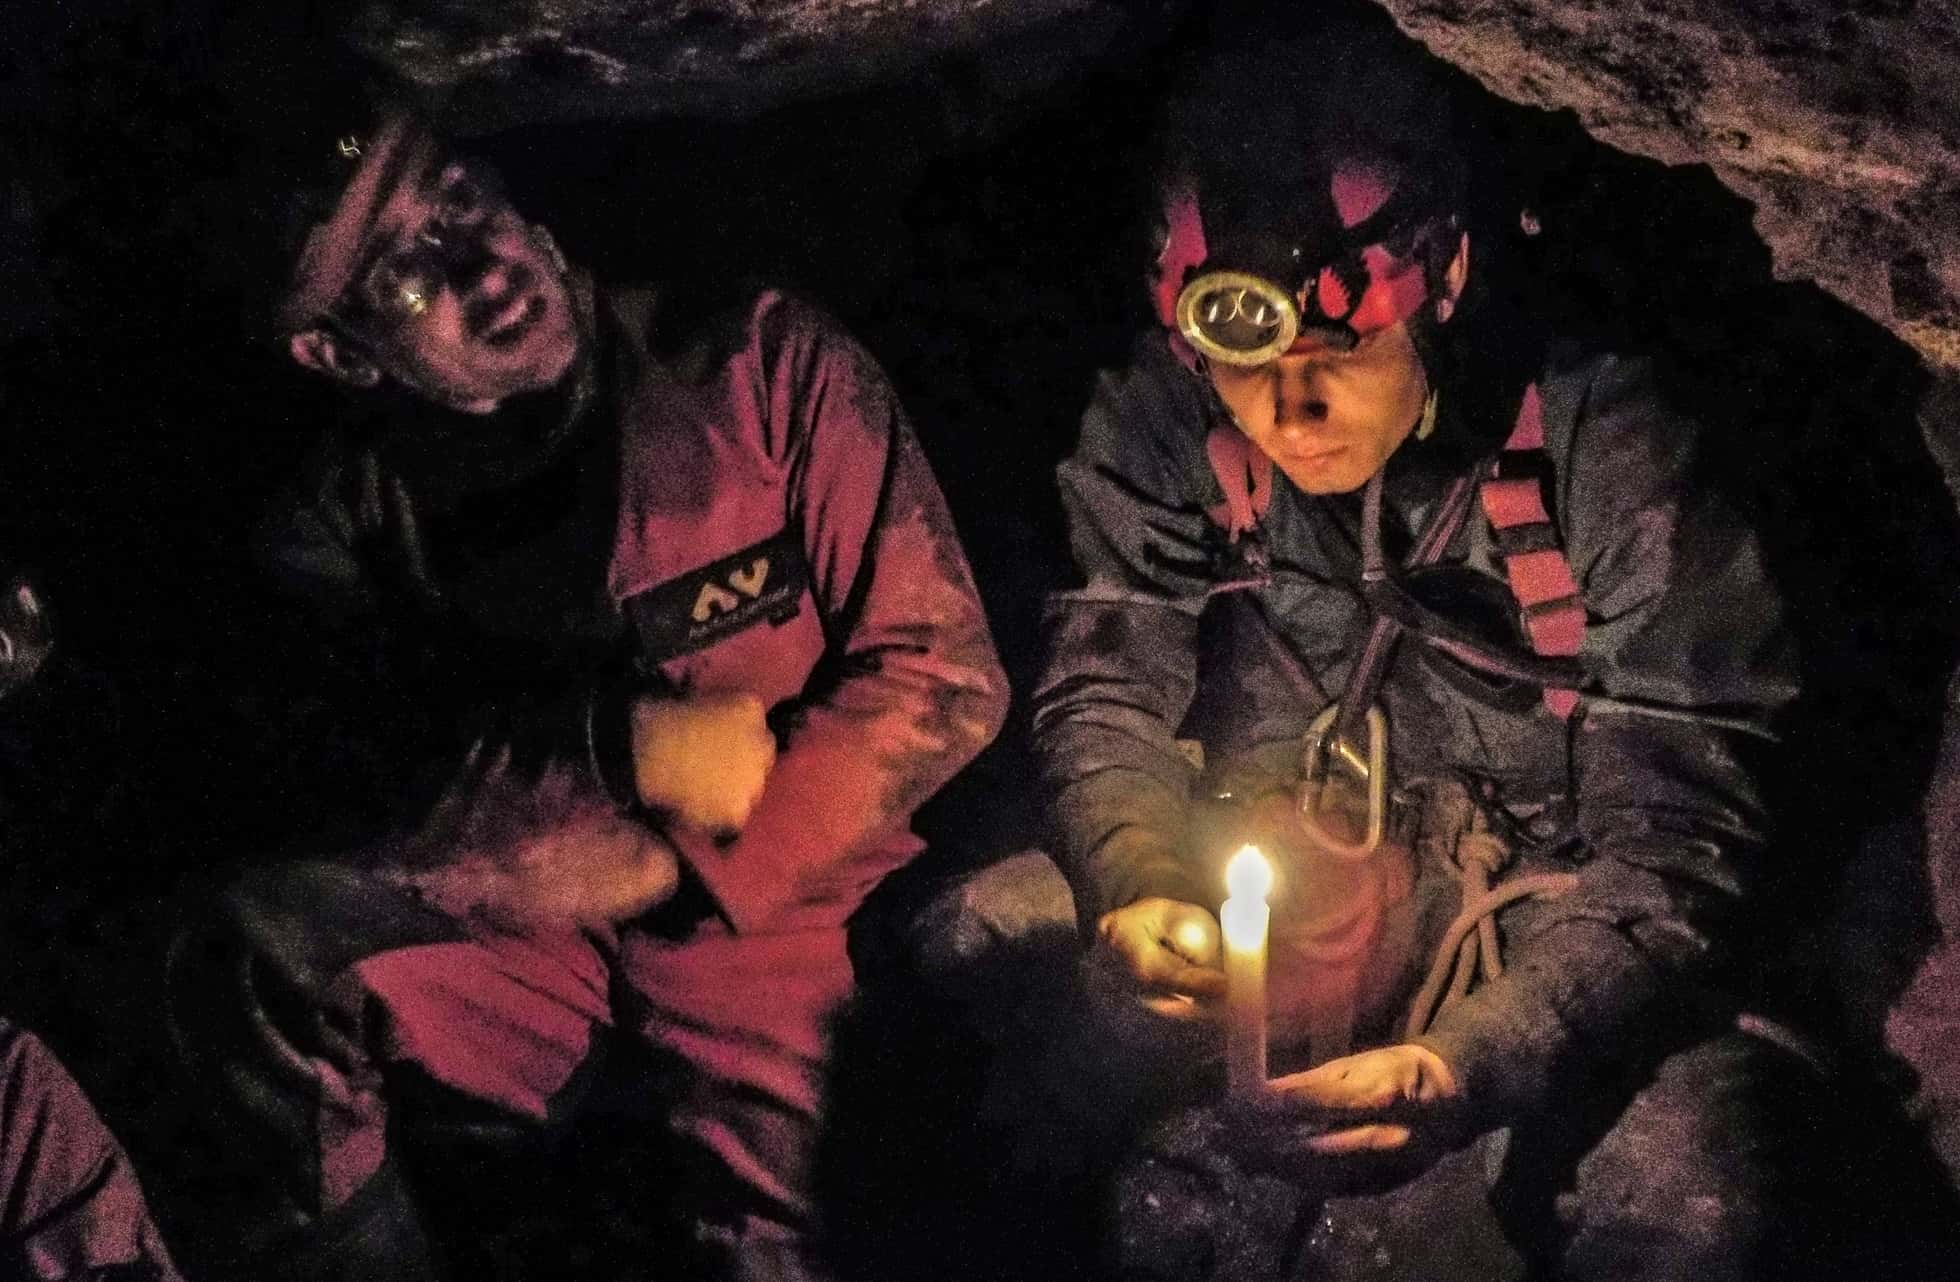 Mine explorers in a Cornish tin mine experiencing candlelight, just like the miners of old.